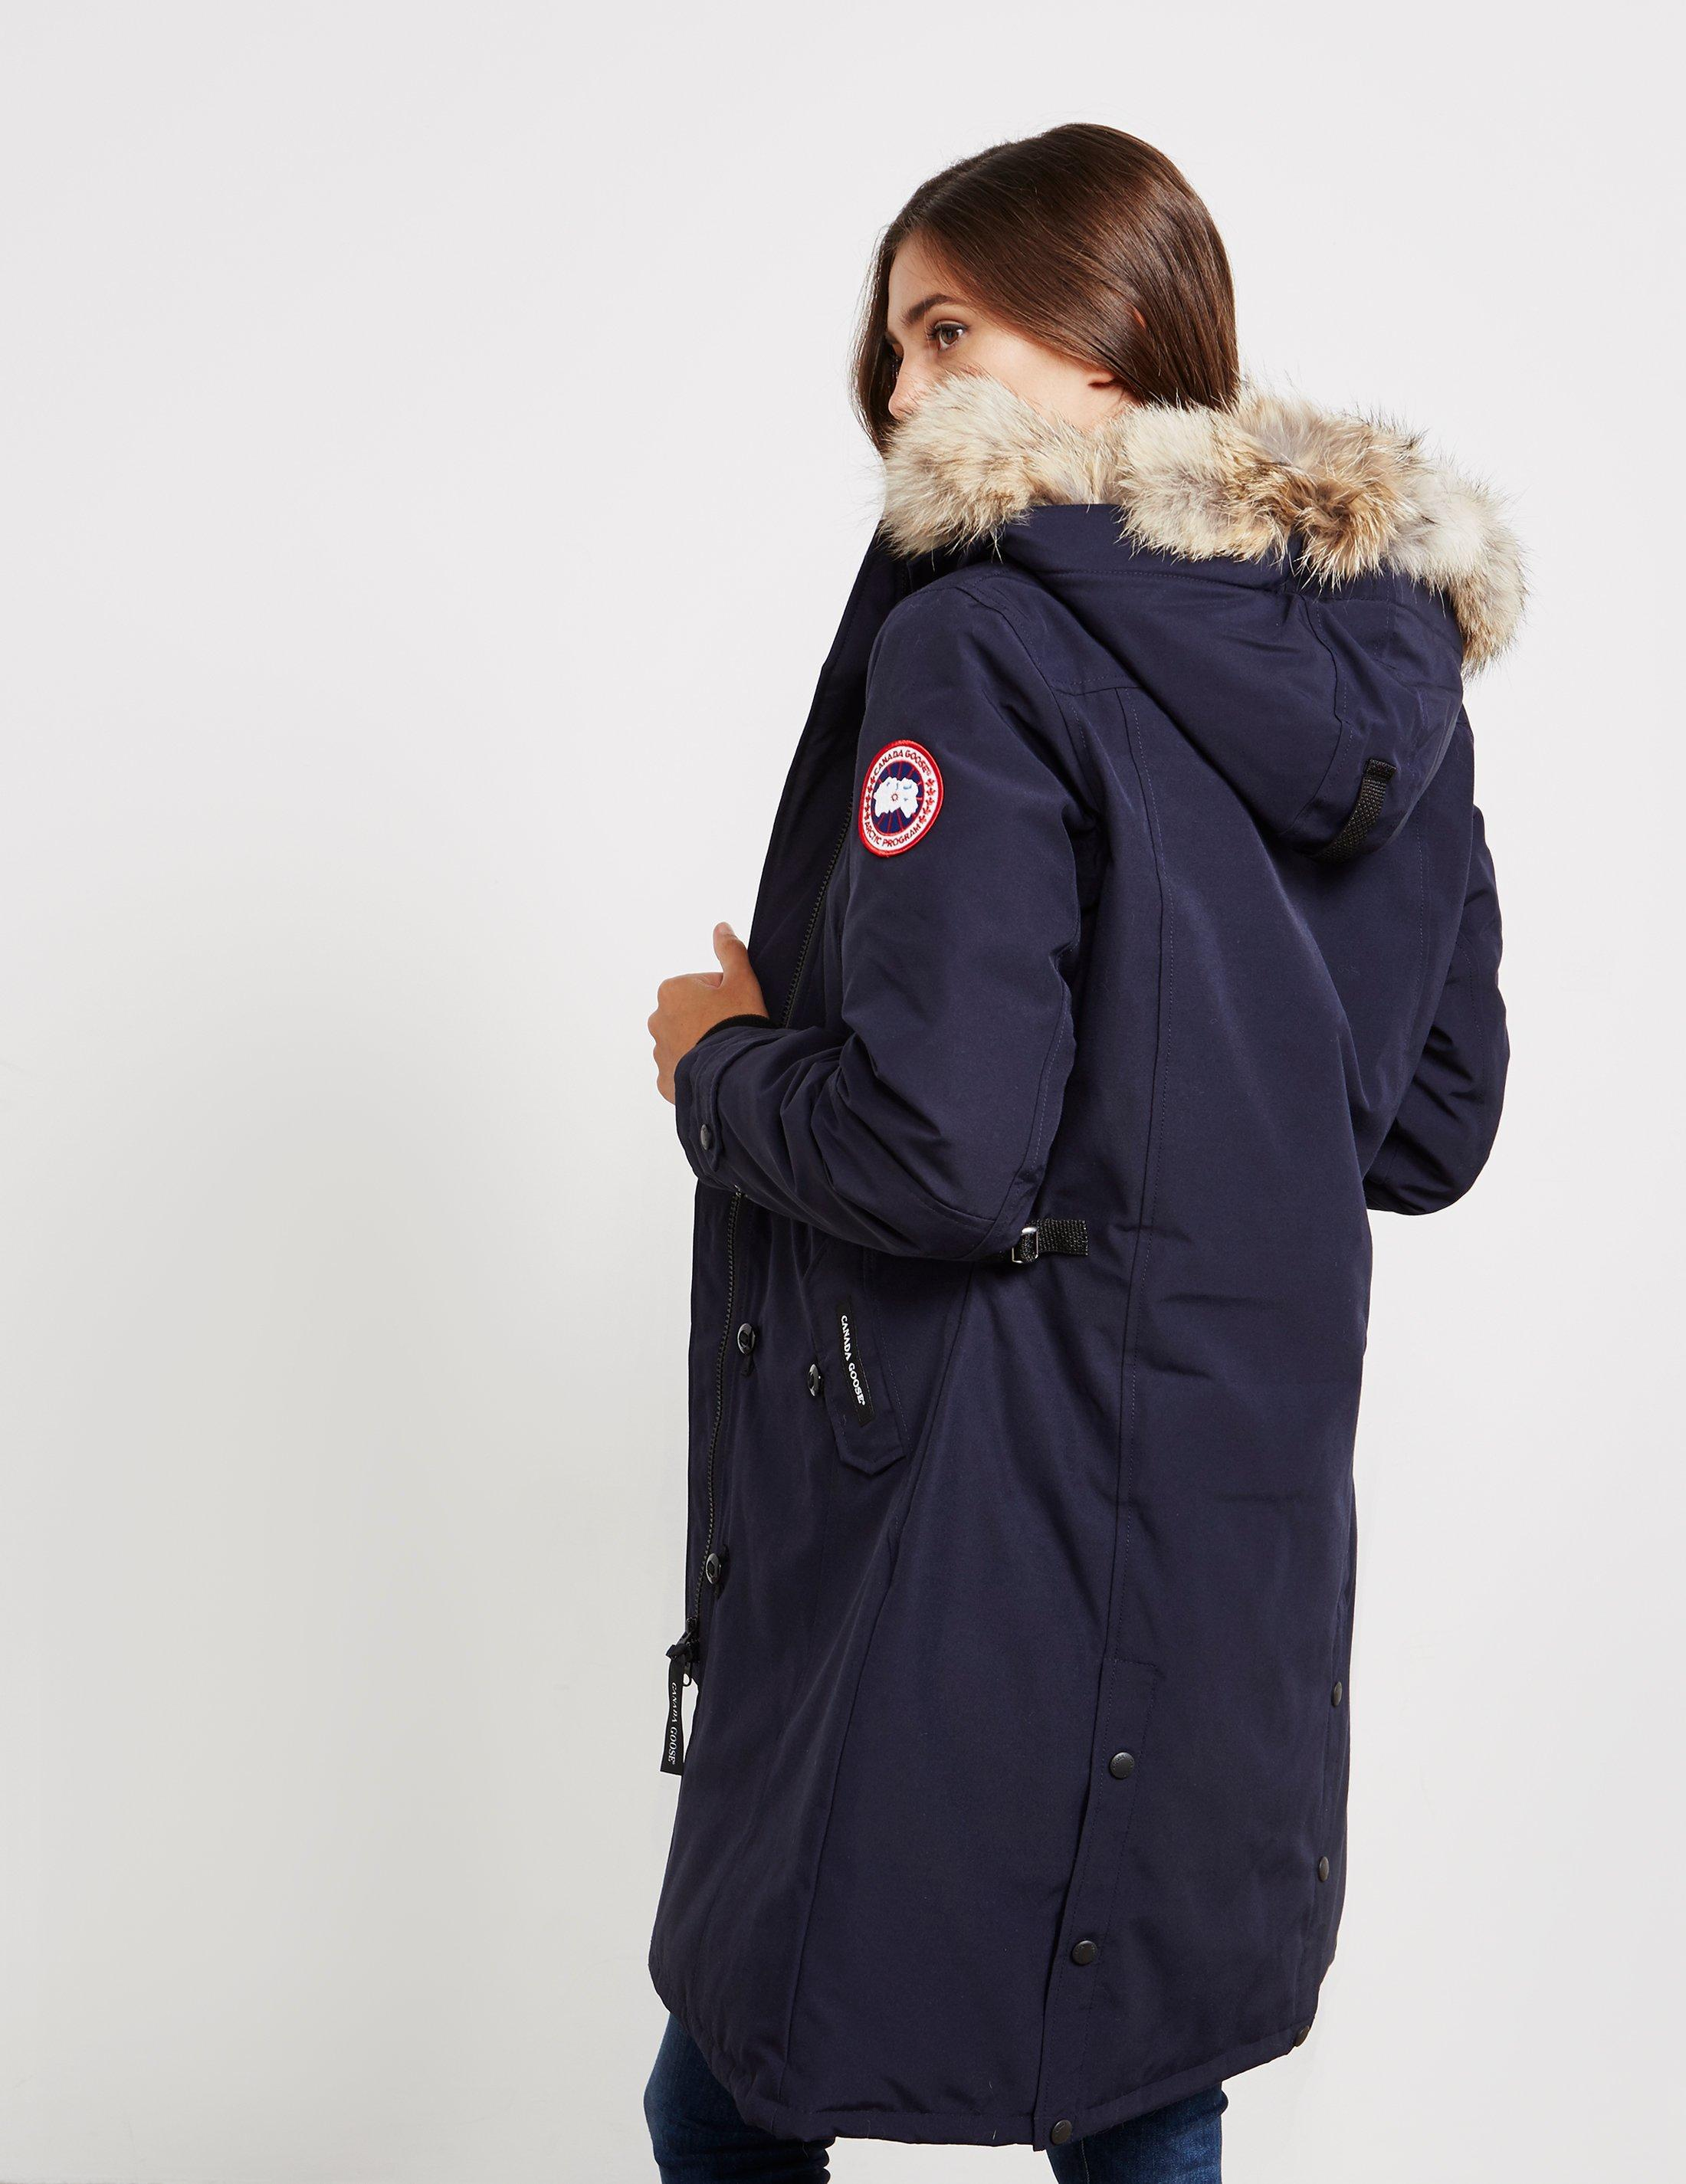 Lyst - Canada Goose Womens Kensington Padded Parka Jacket Blue in Blue 841bc410e6